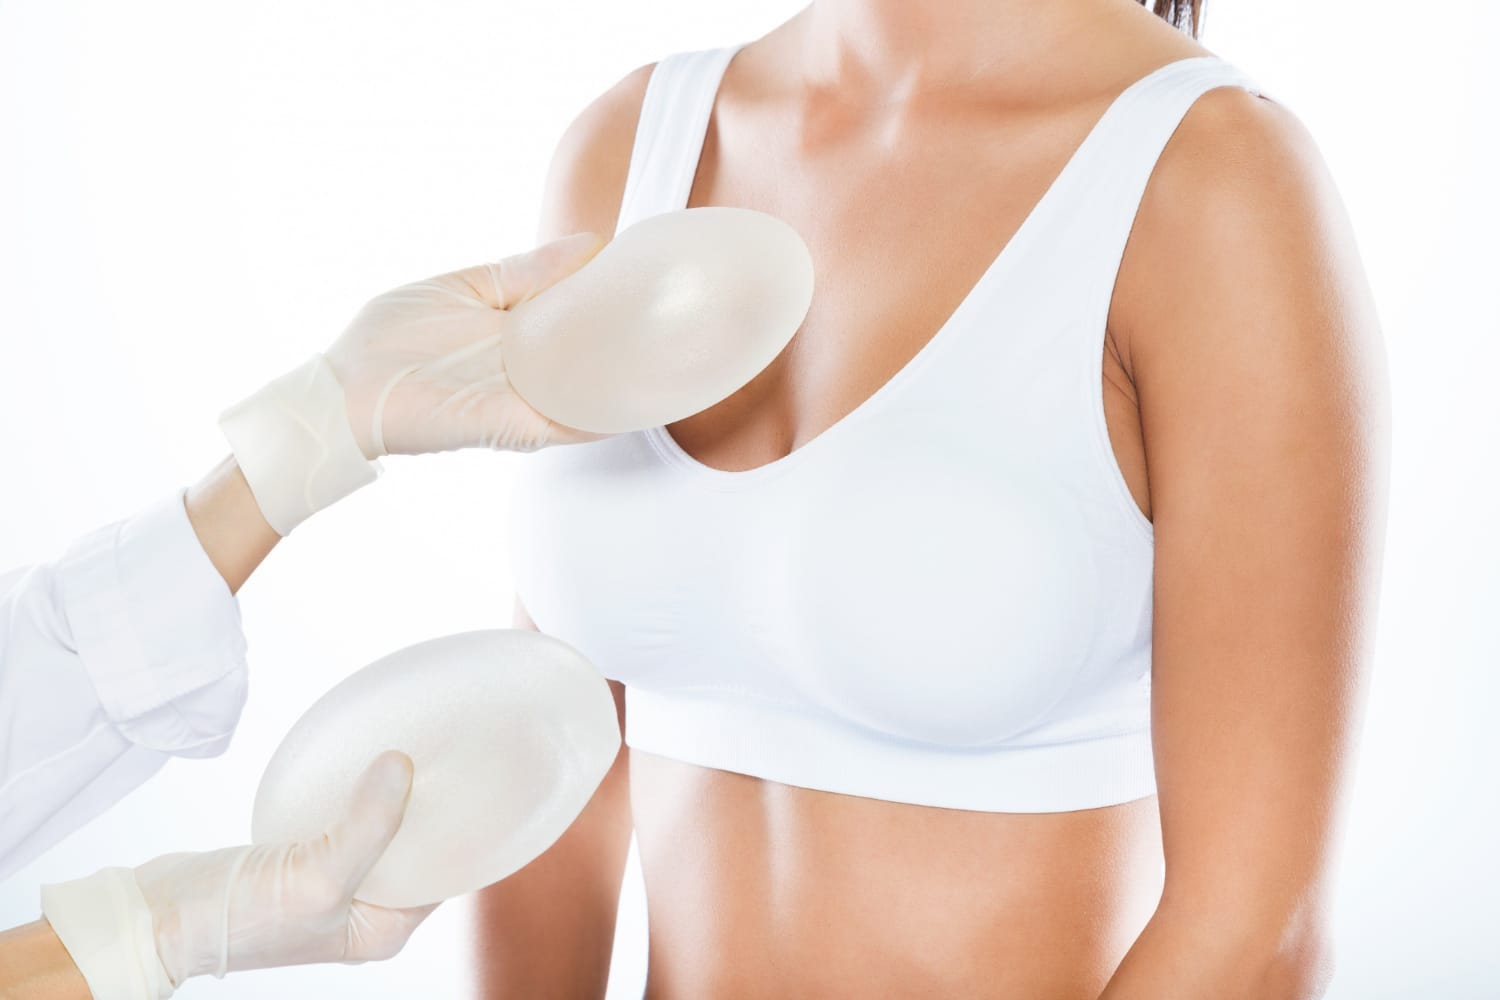 breast implant removal procedure and surgery